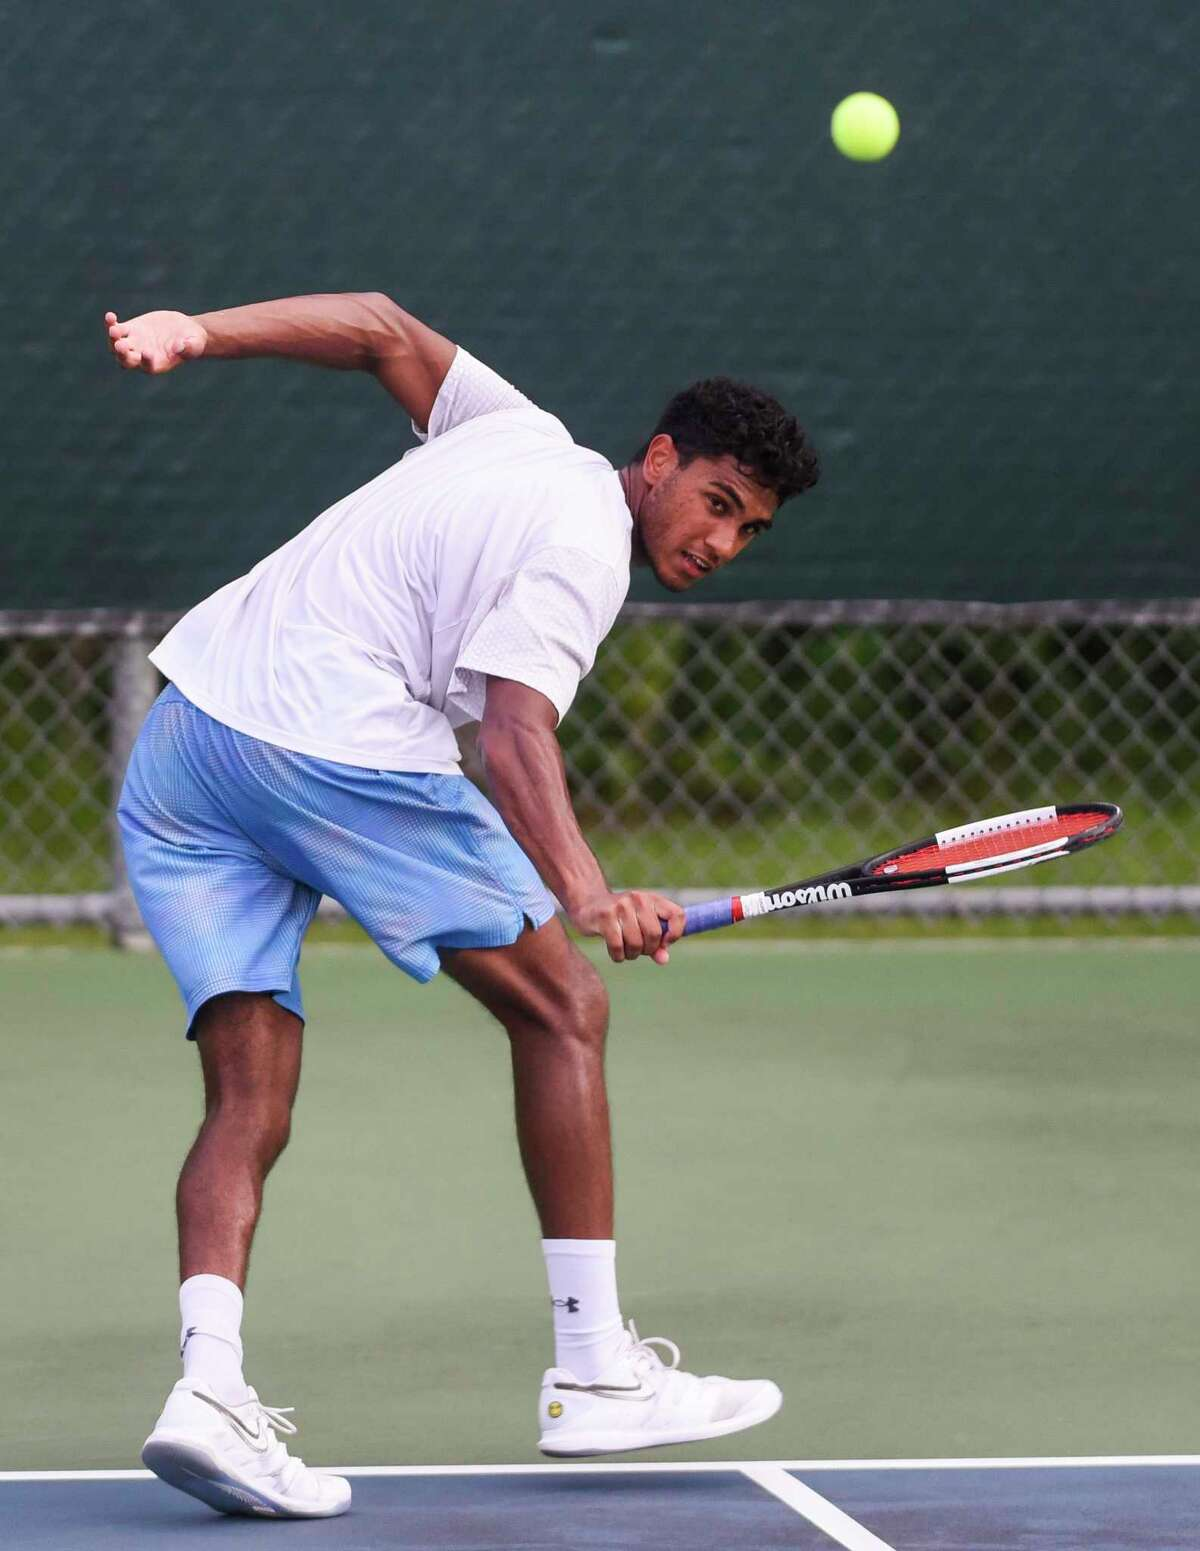 Ashwin Vaithianathan looks back after hitting the ball during the Southeast Texas Tennis Association 100th annual Labor Day tournament at the Beaumont Tennis Center on Friday. Photo taken on Friday, 08/22/19. Ryan Welch/The Enterprise